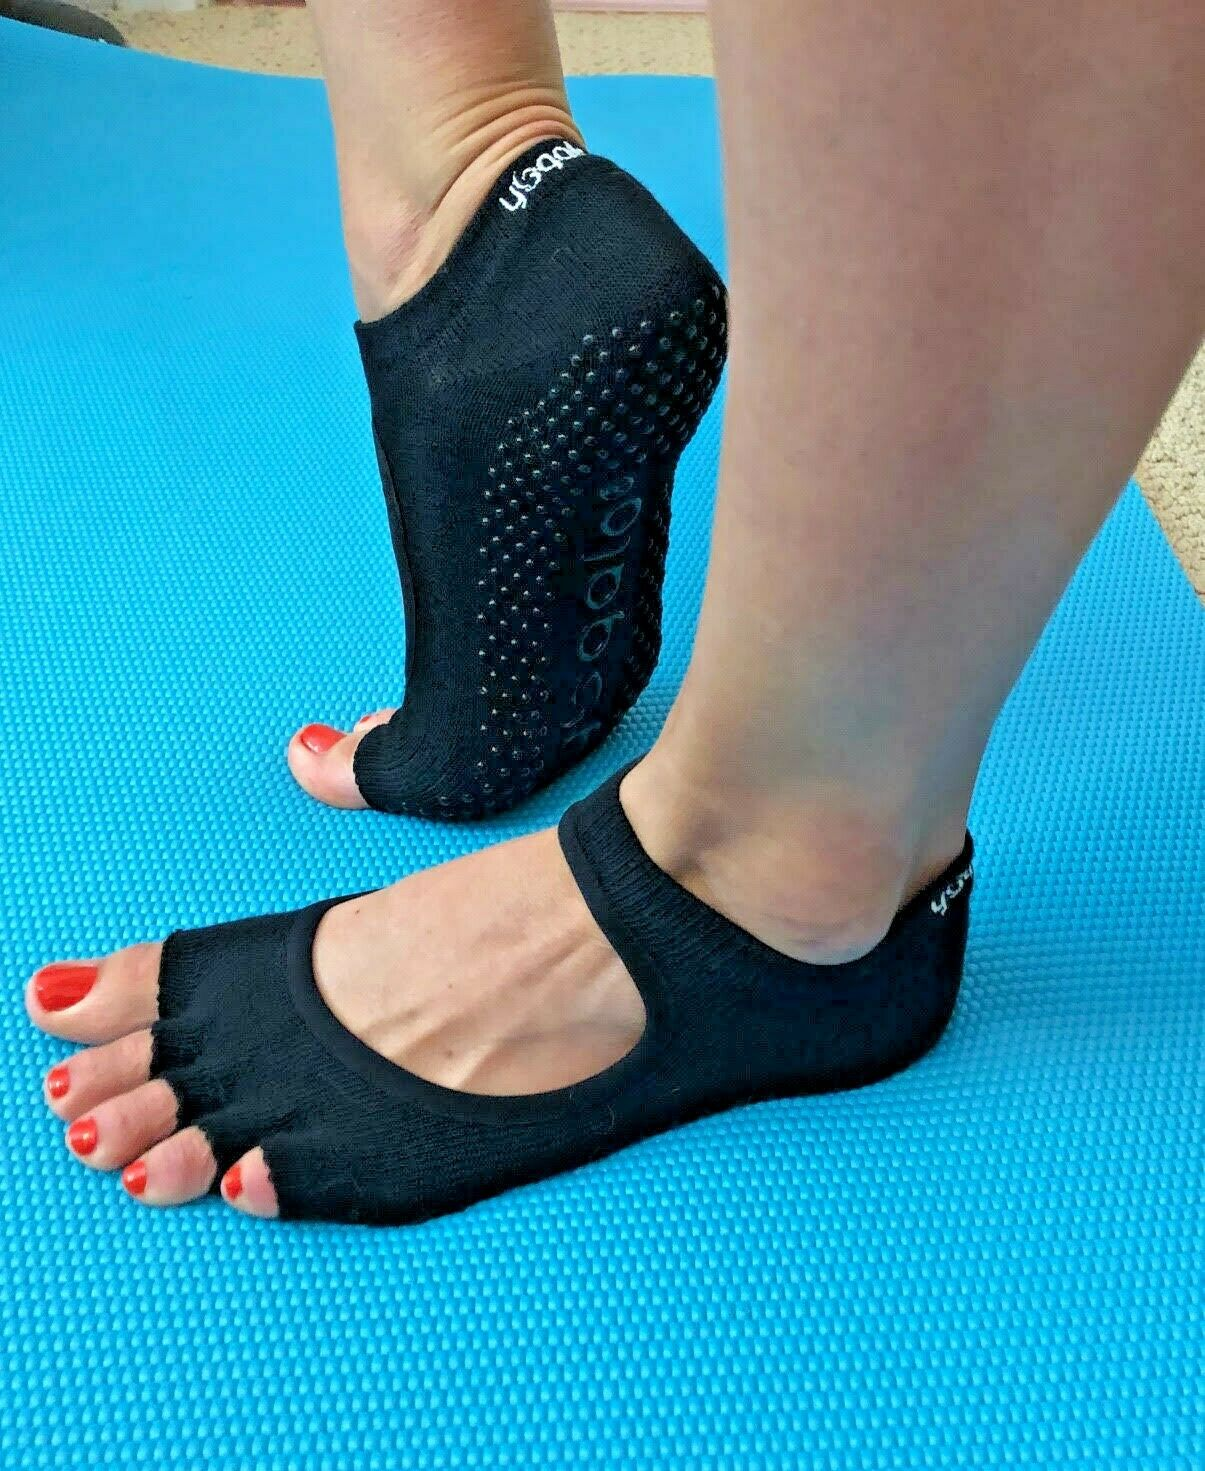 Yoga Socks Toeless Grip Non Slip Dance Pilates Exercise High Quality – US Seller